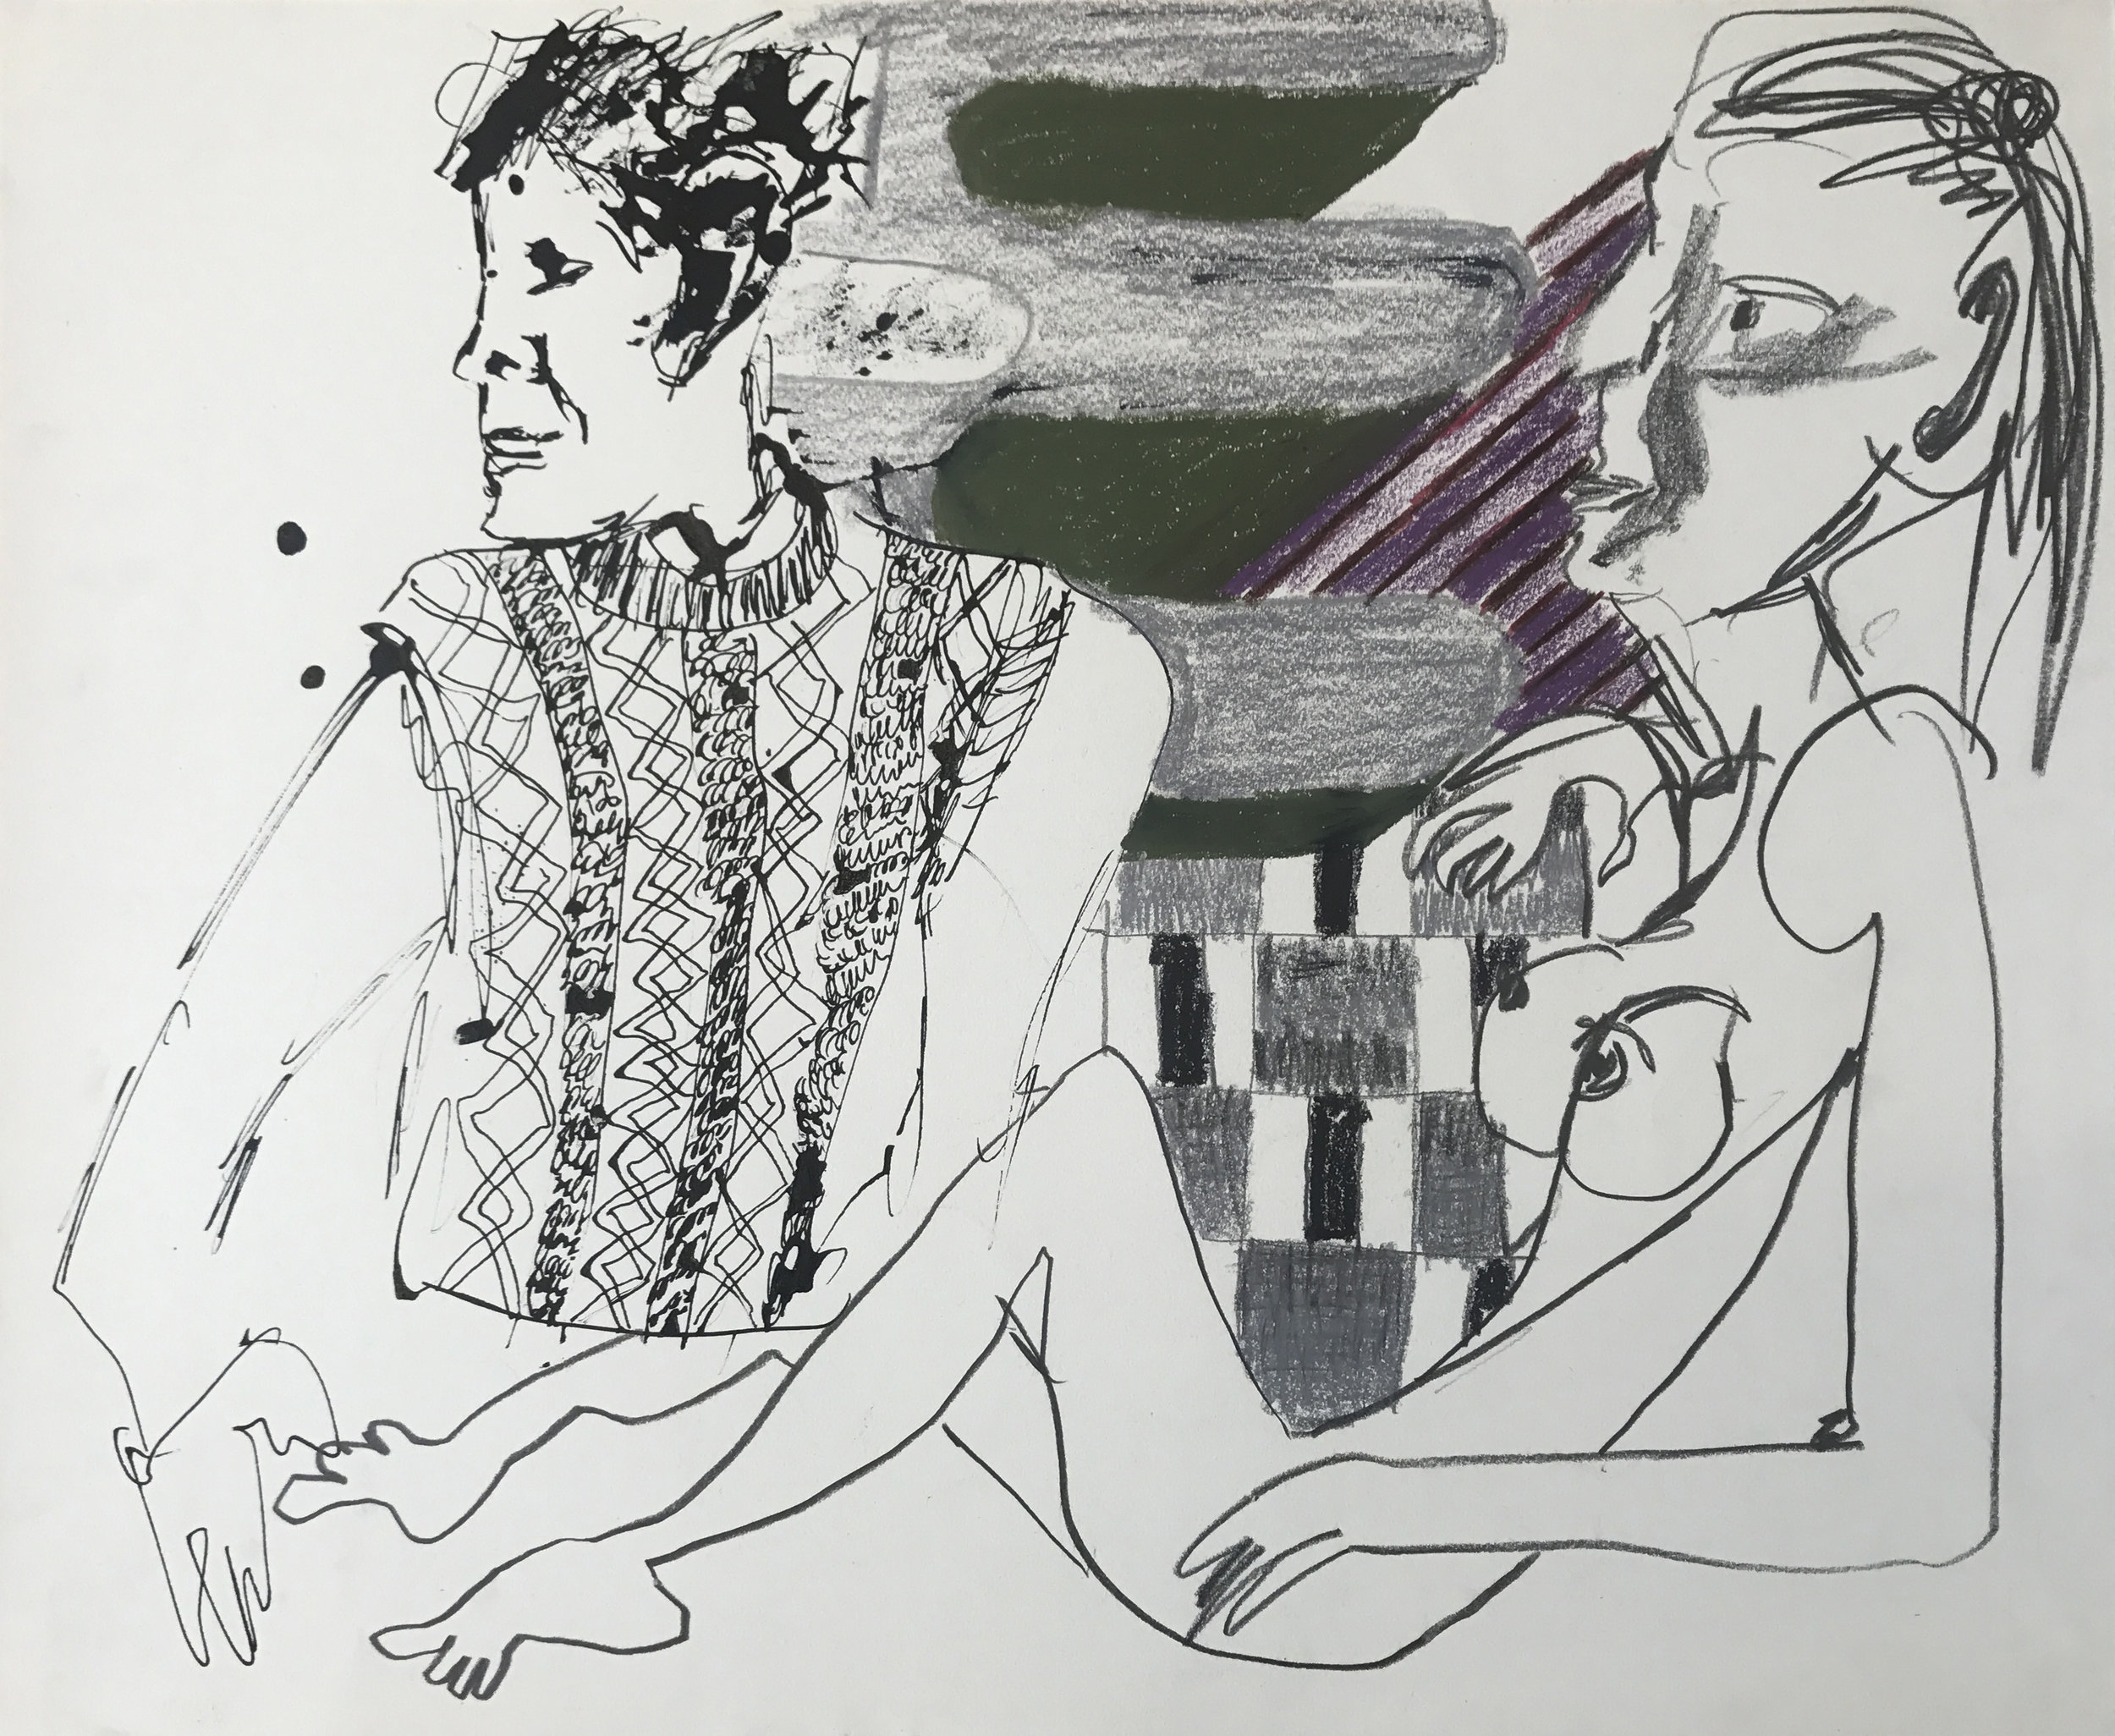 Sofi Brazzeal,  Untitled (figures with knit sweater and pattern), 2 016, ink, pencil and color pencil on paper, 14 x 17 in.